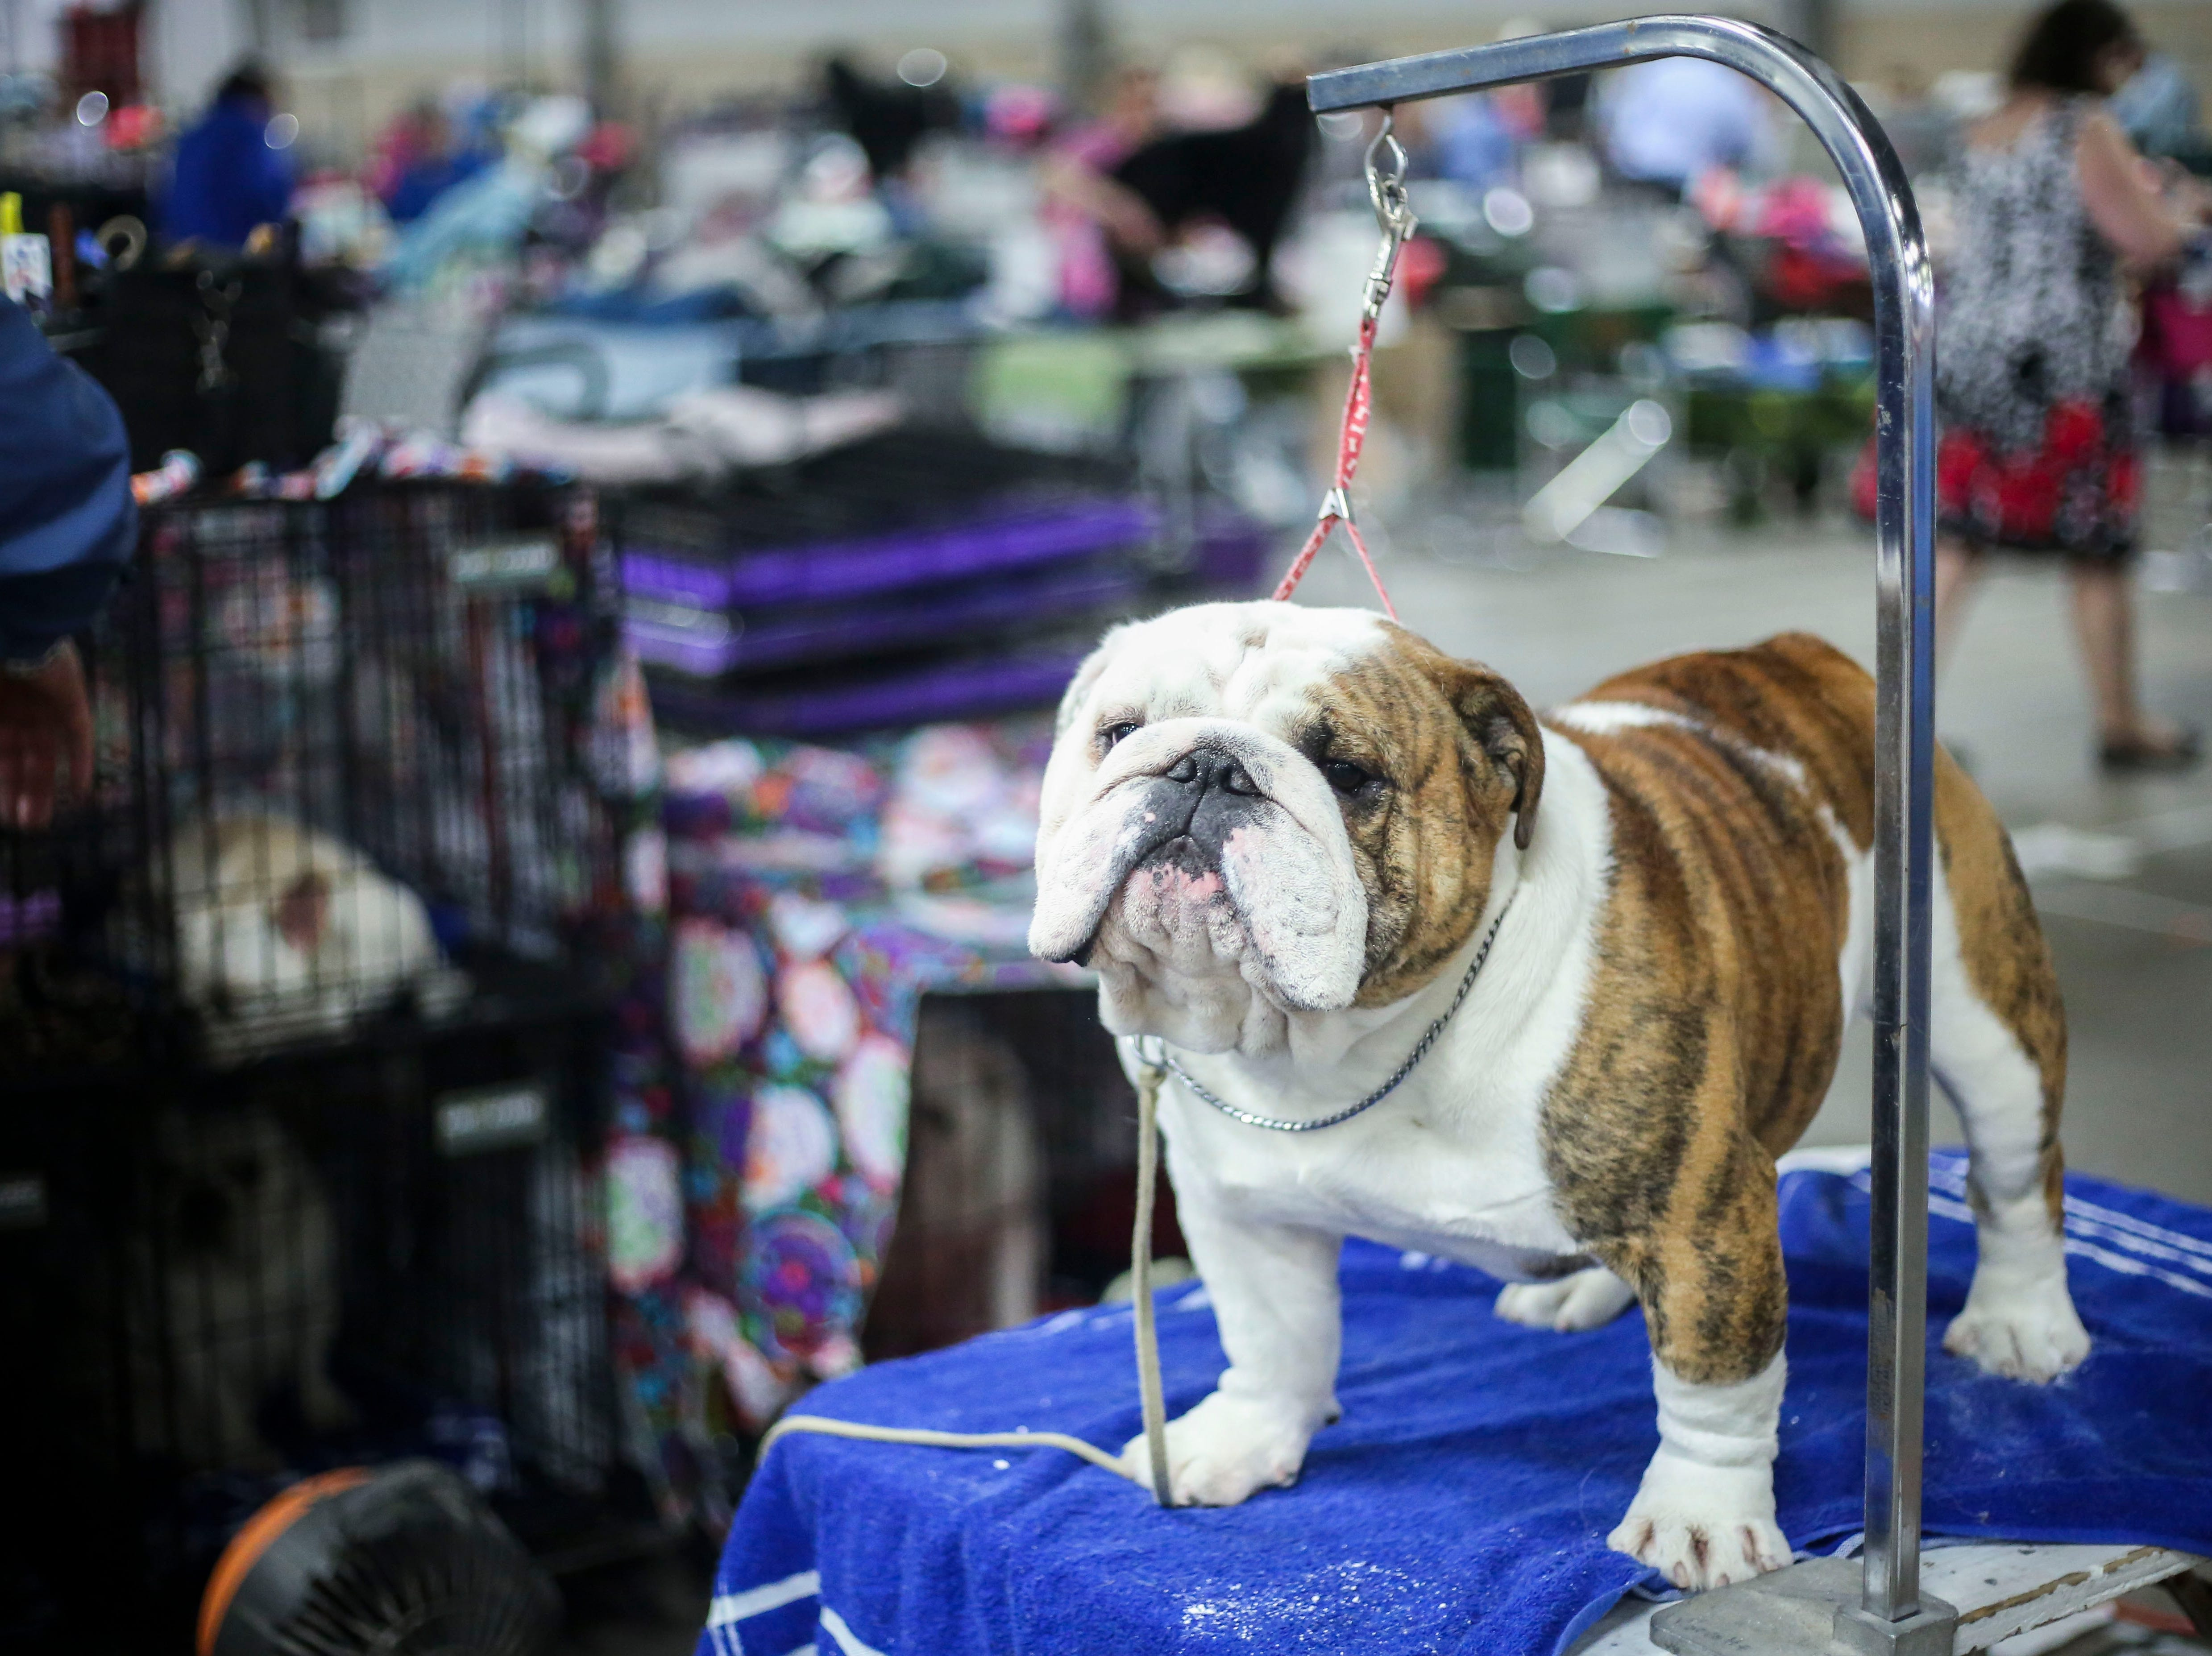 Chunk, a 2-year-old English bulldog, is groomed before competition during the Kentuckiana Cluster of Dog Shows at the Kentucky Fair and Exposition Center in Louisville, Kentucky, on Thursday, March 14, 2019.